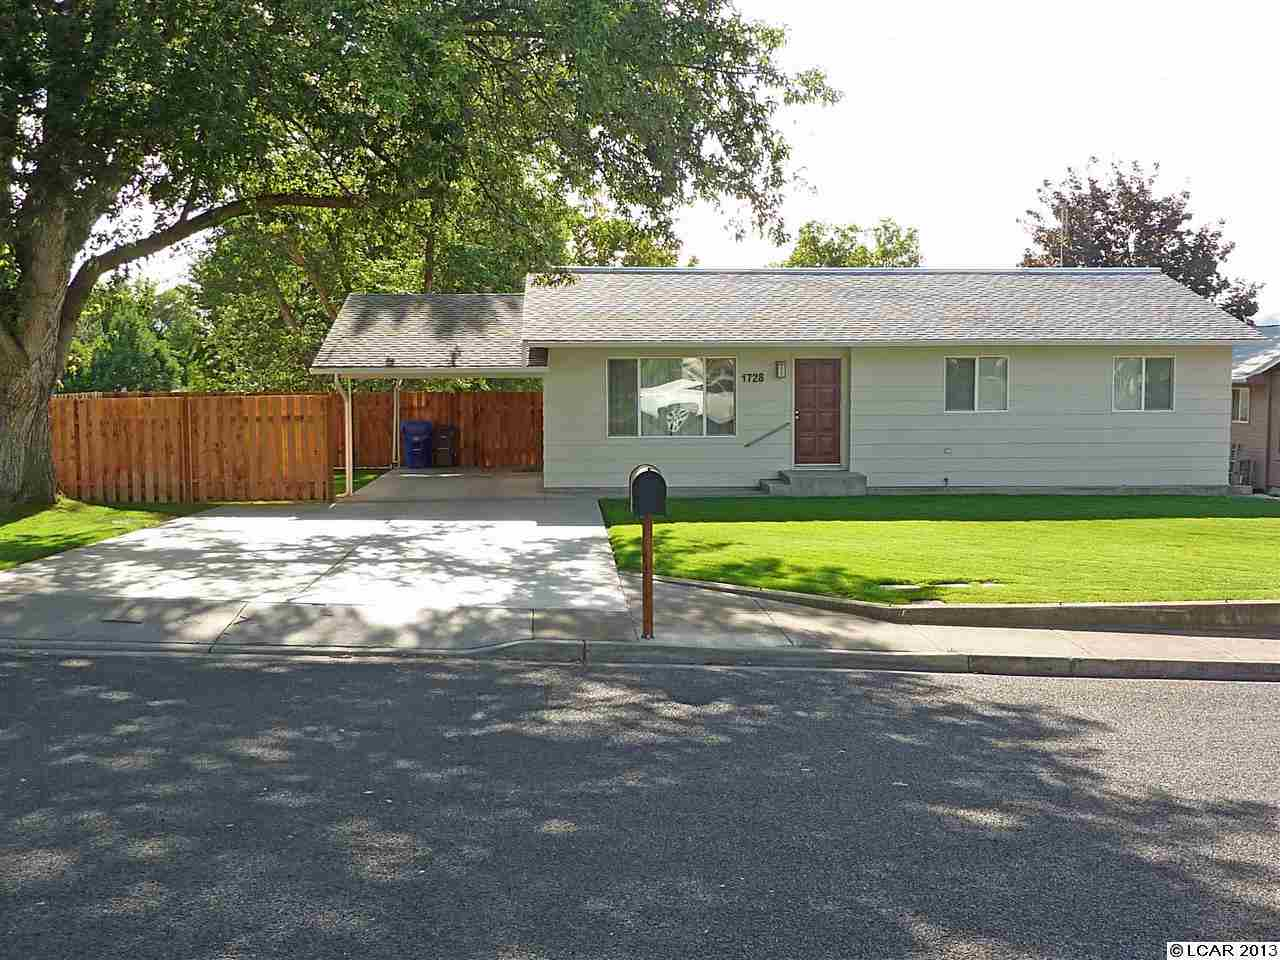 1728 11th St, Lewiston, ID 83501